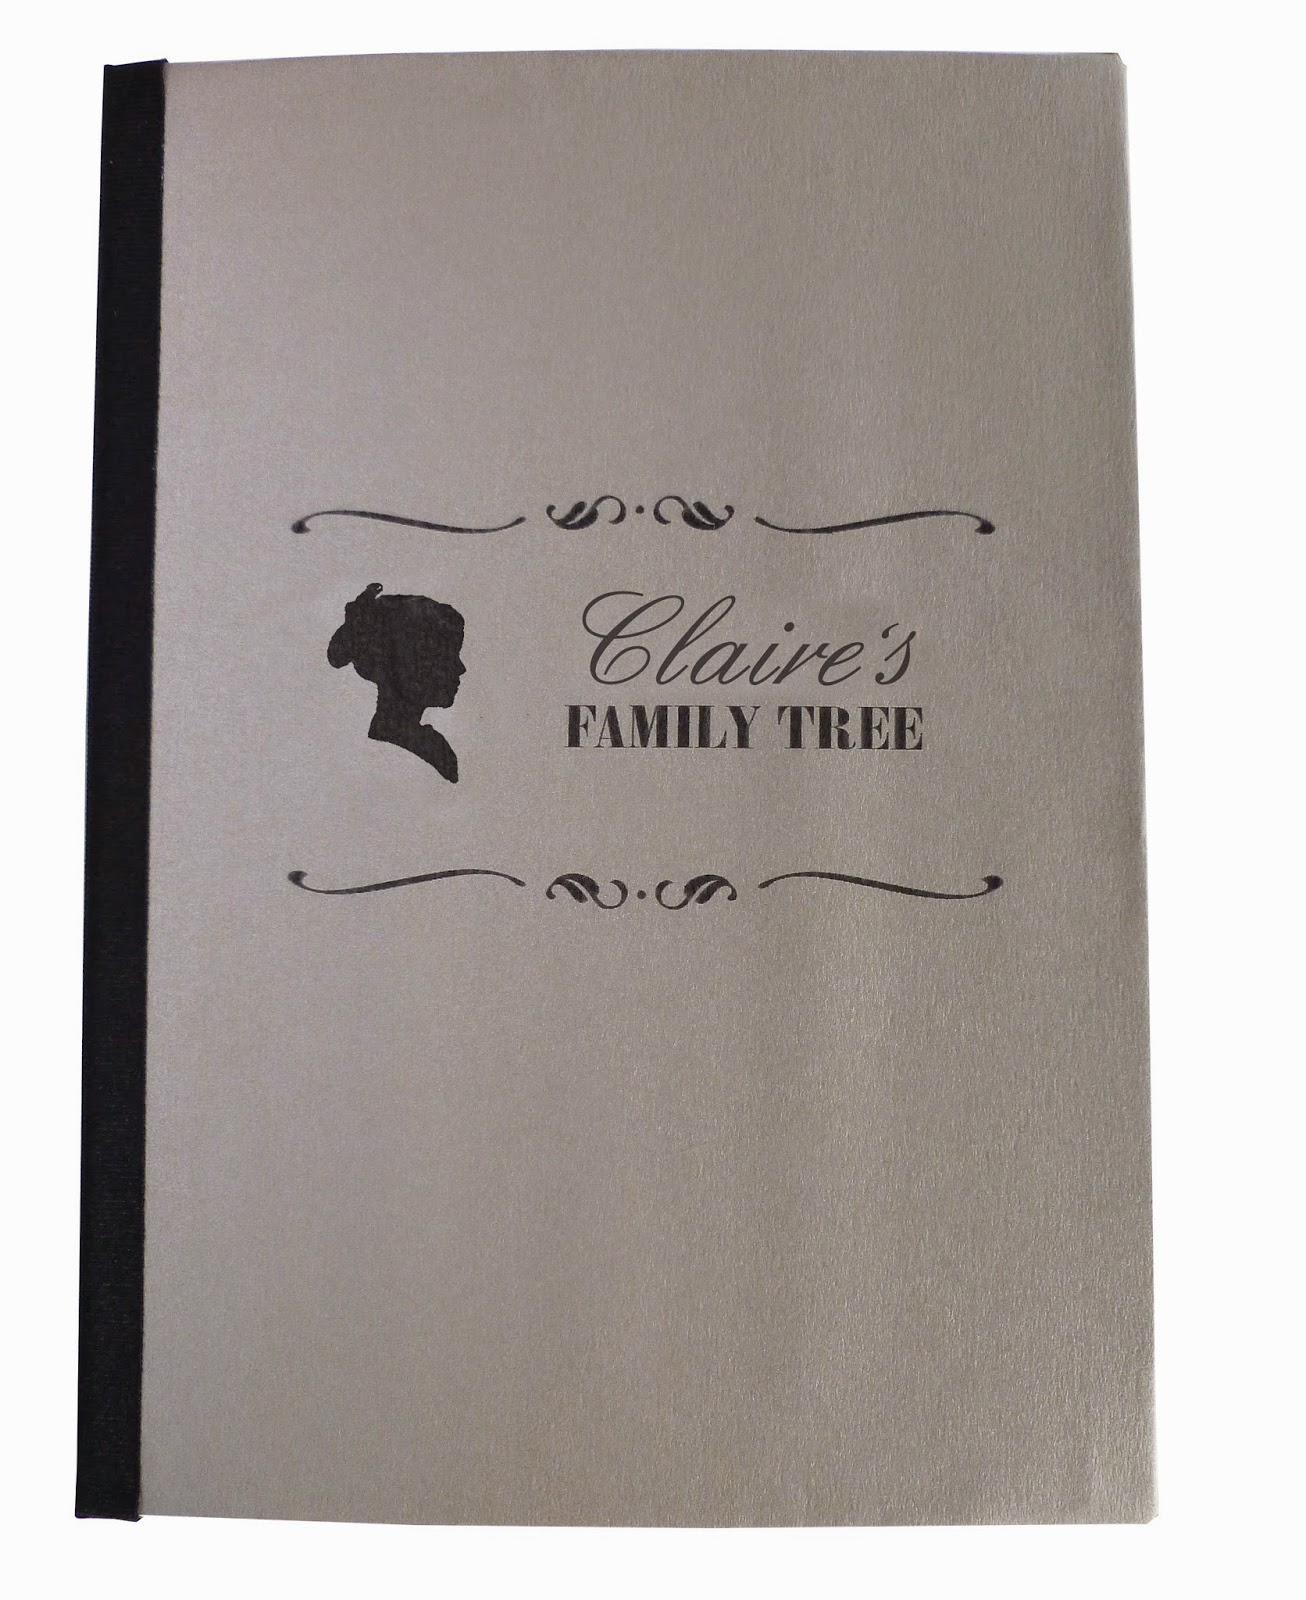 Family tree notebook